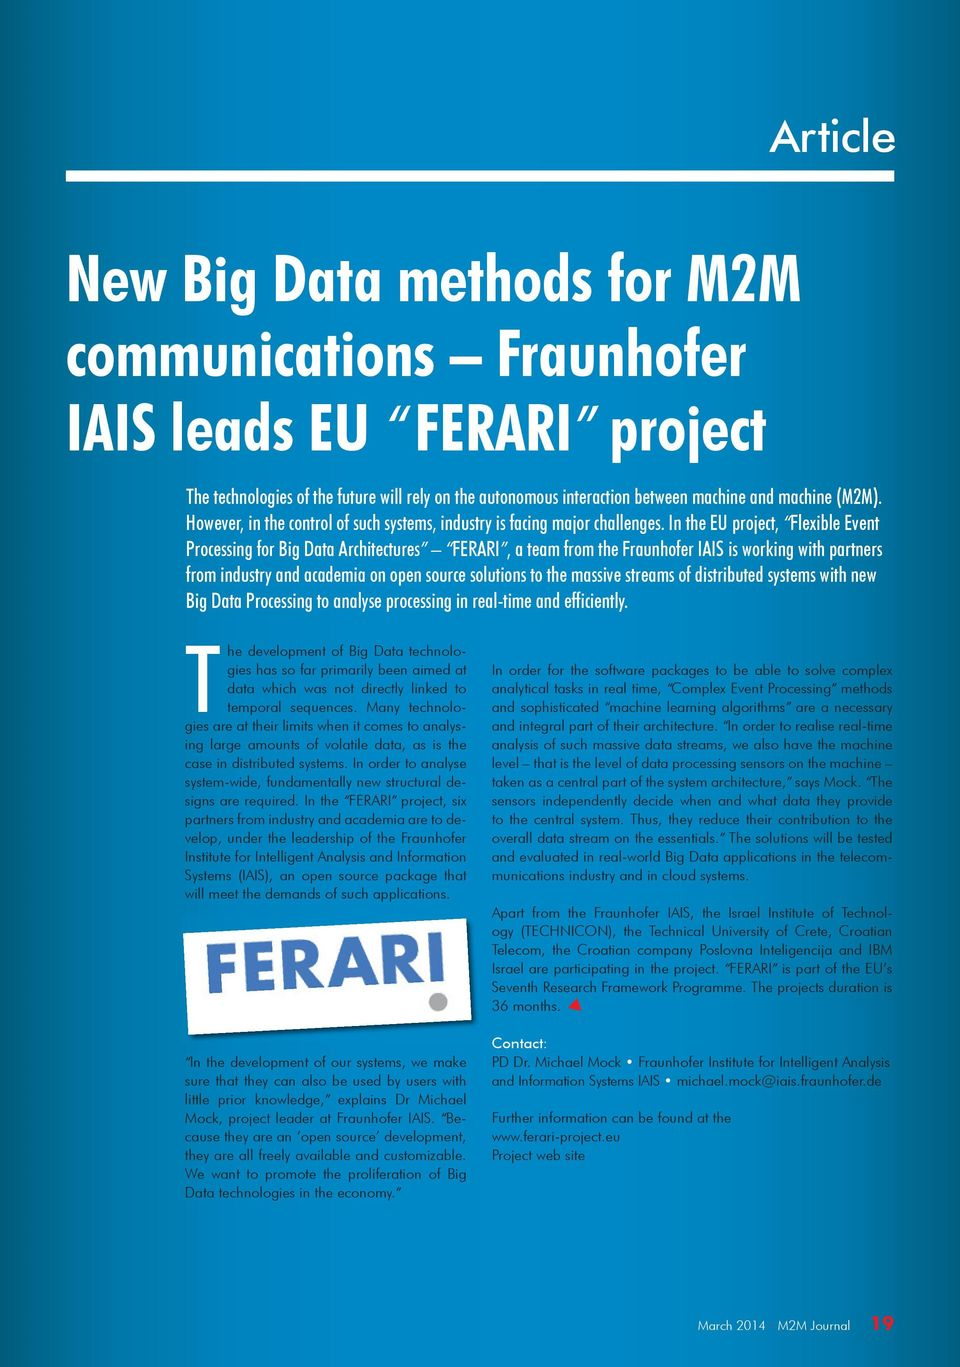 In the EU project, Flexible Event Processing for Big Data Architectures FERARI, a team from the Fraunhofer IAIS is working with partners from industry and academia on open source solutions to the